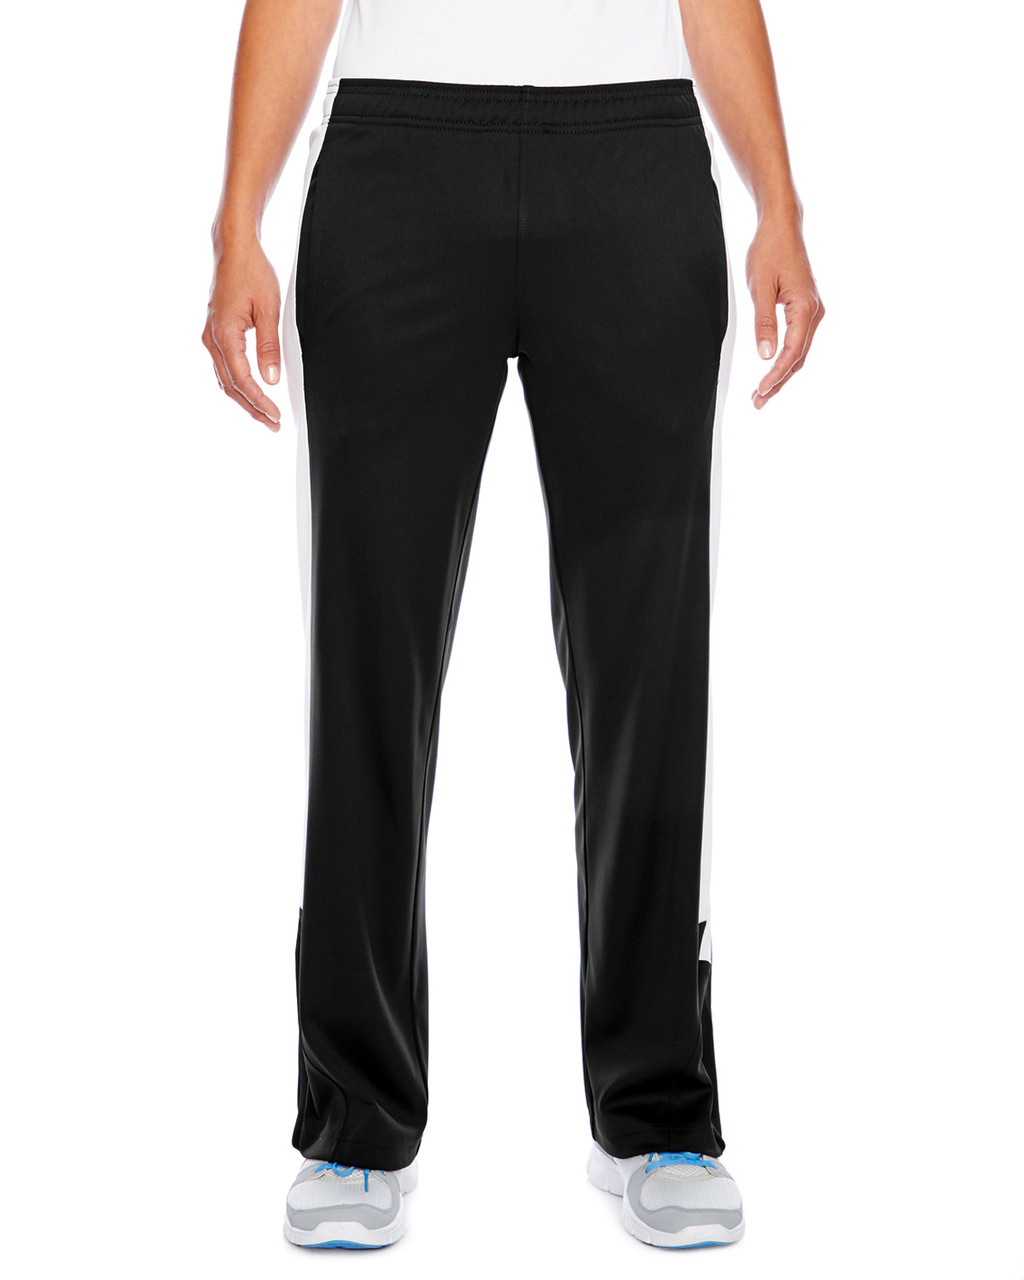 Black/White - TT44W Team 365 Ladies' Performance Fleece Pant | Blankclothing.ca